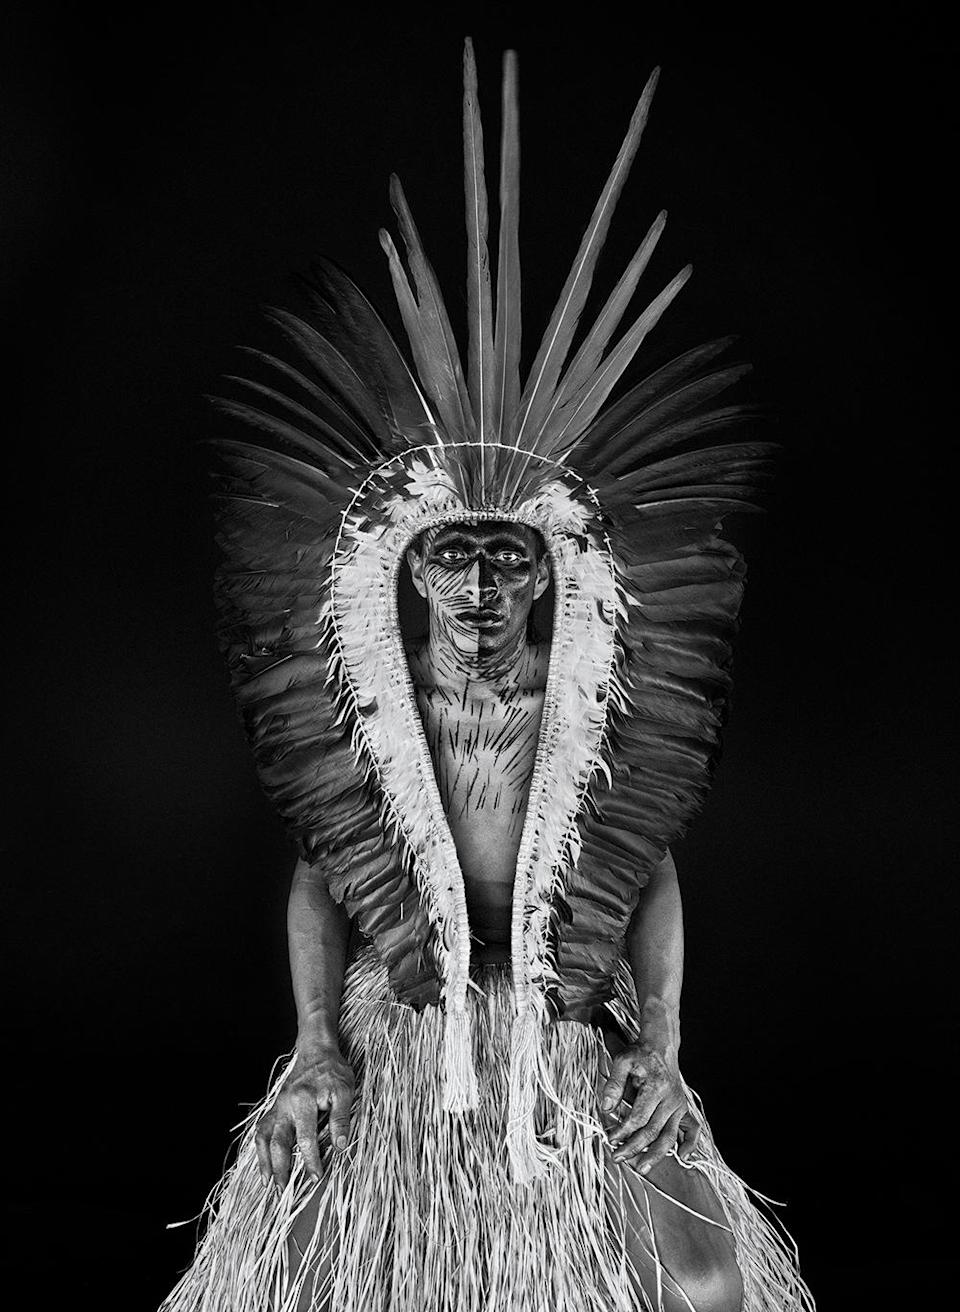 Credit: © Amazonas Images/Courtesy Peter Fetterman Gallery - Credit: © Amazonas Images/Courtesy Peter Fetterman Gallery